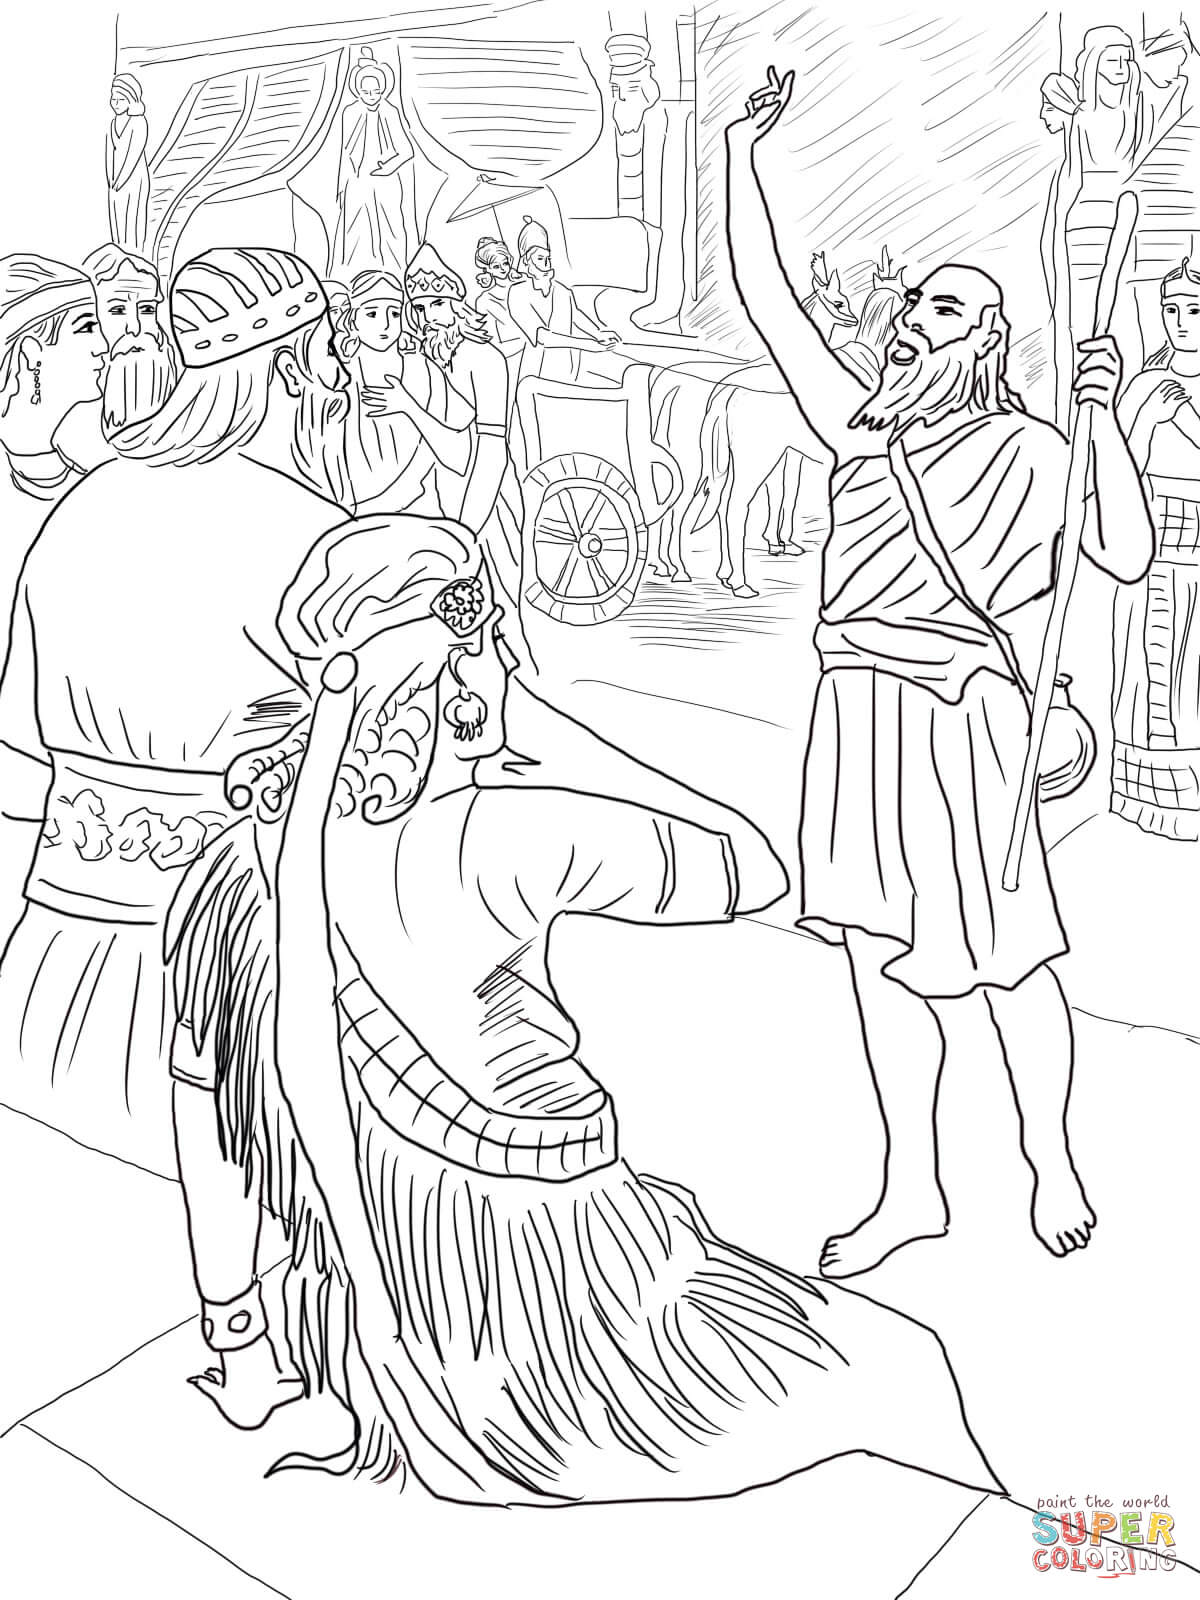 Jonah In Nineveh Coloring Page